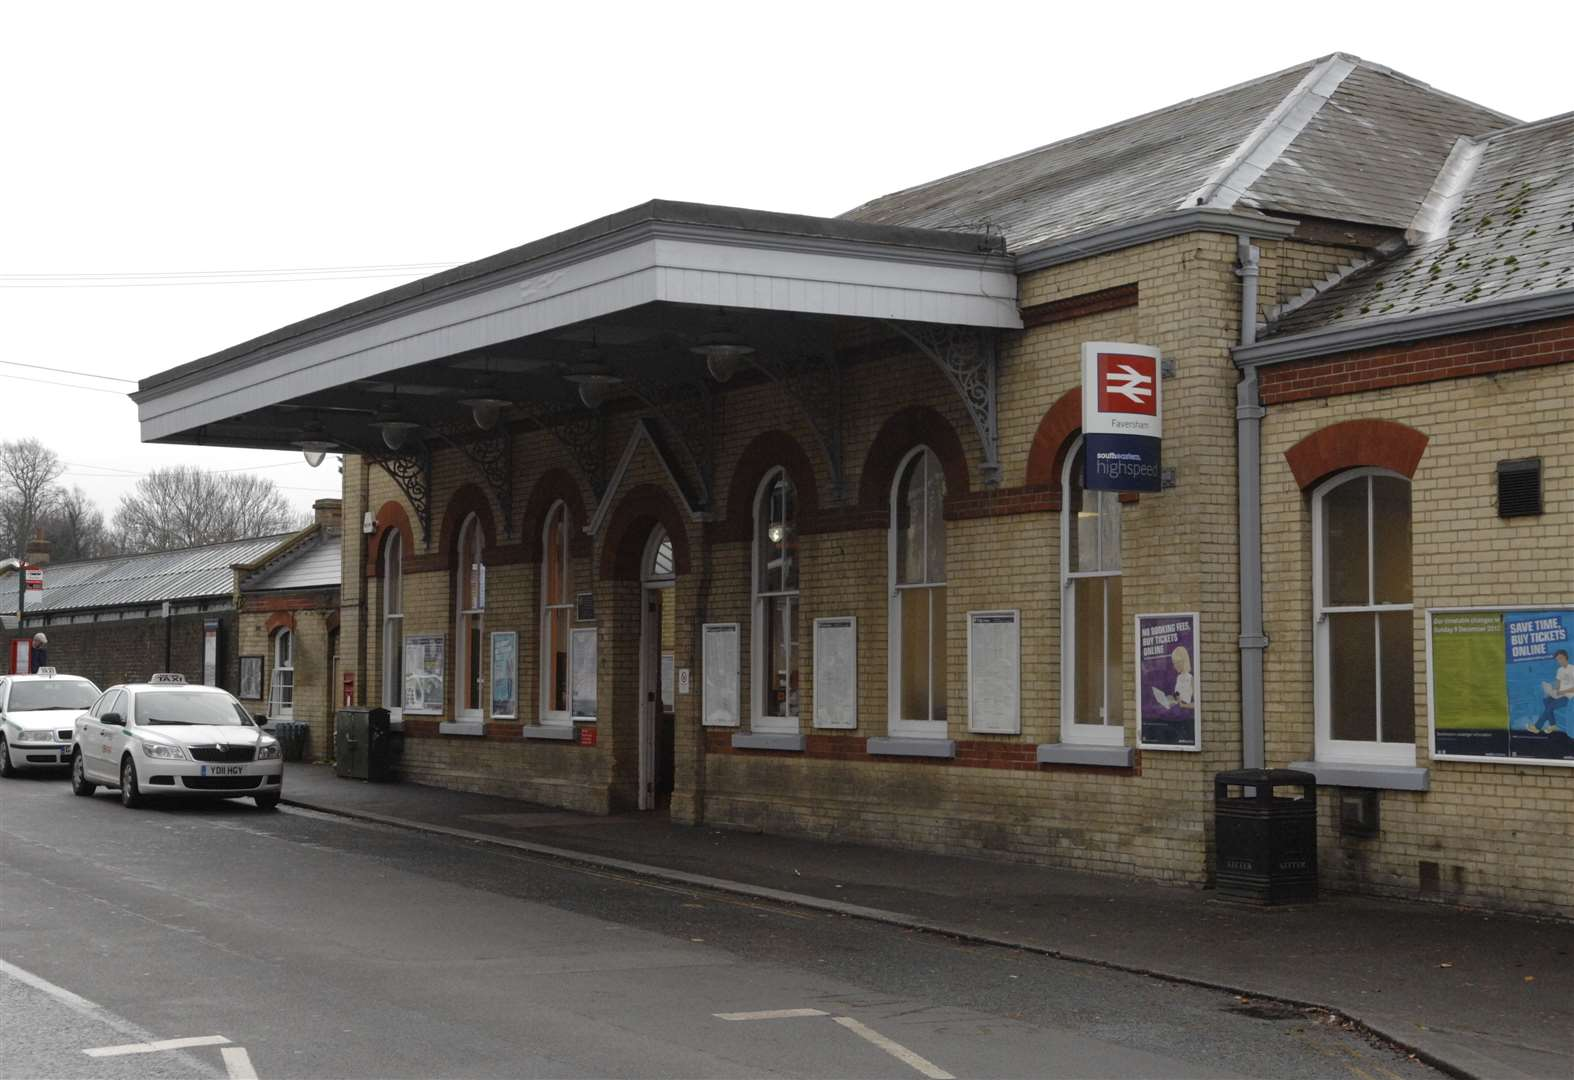 MP on board with campaign to update town's historic station